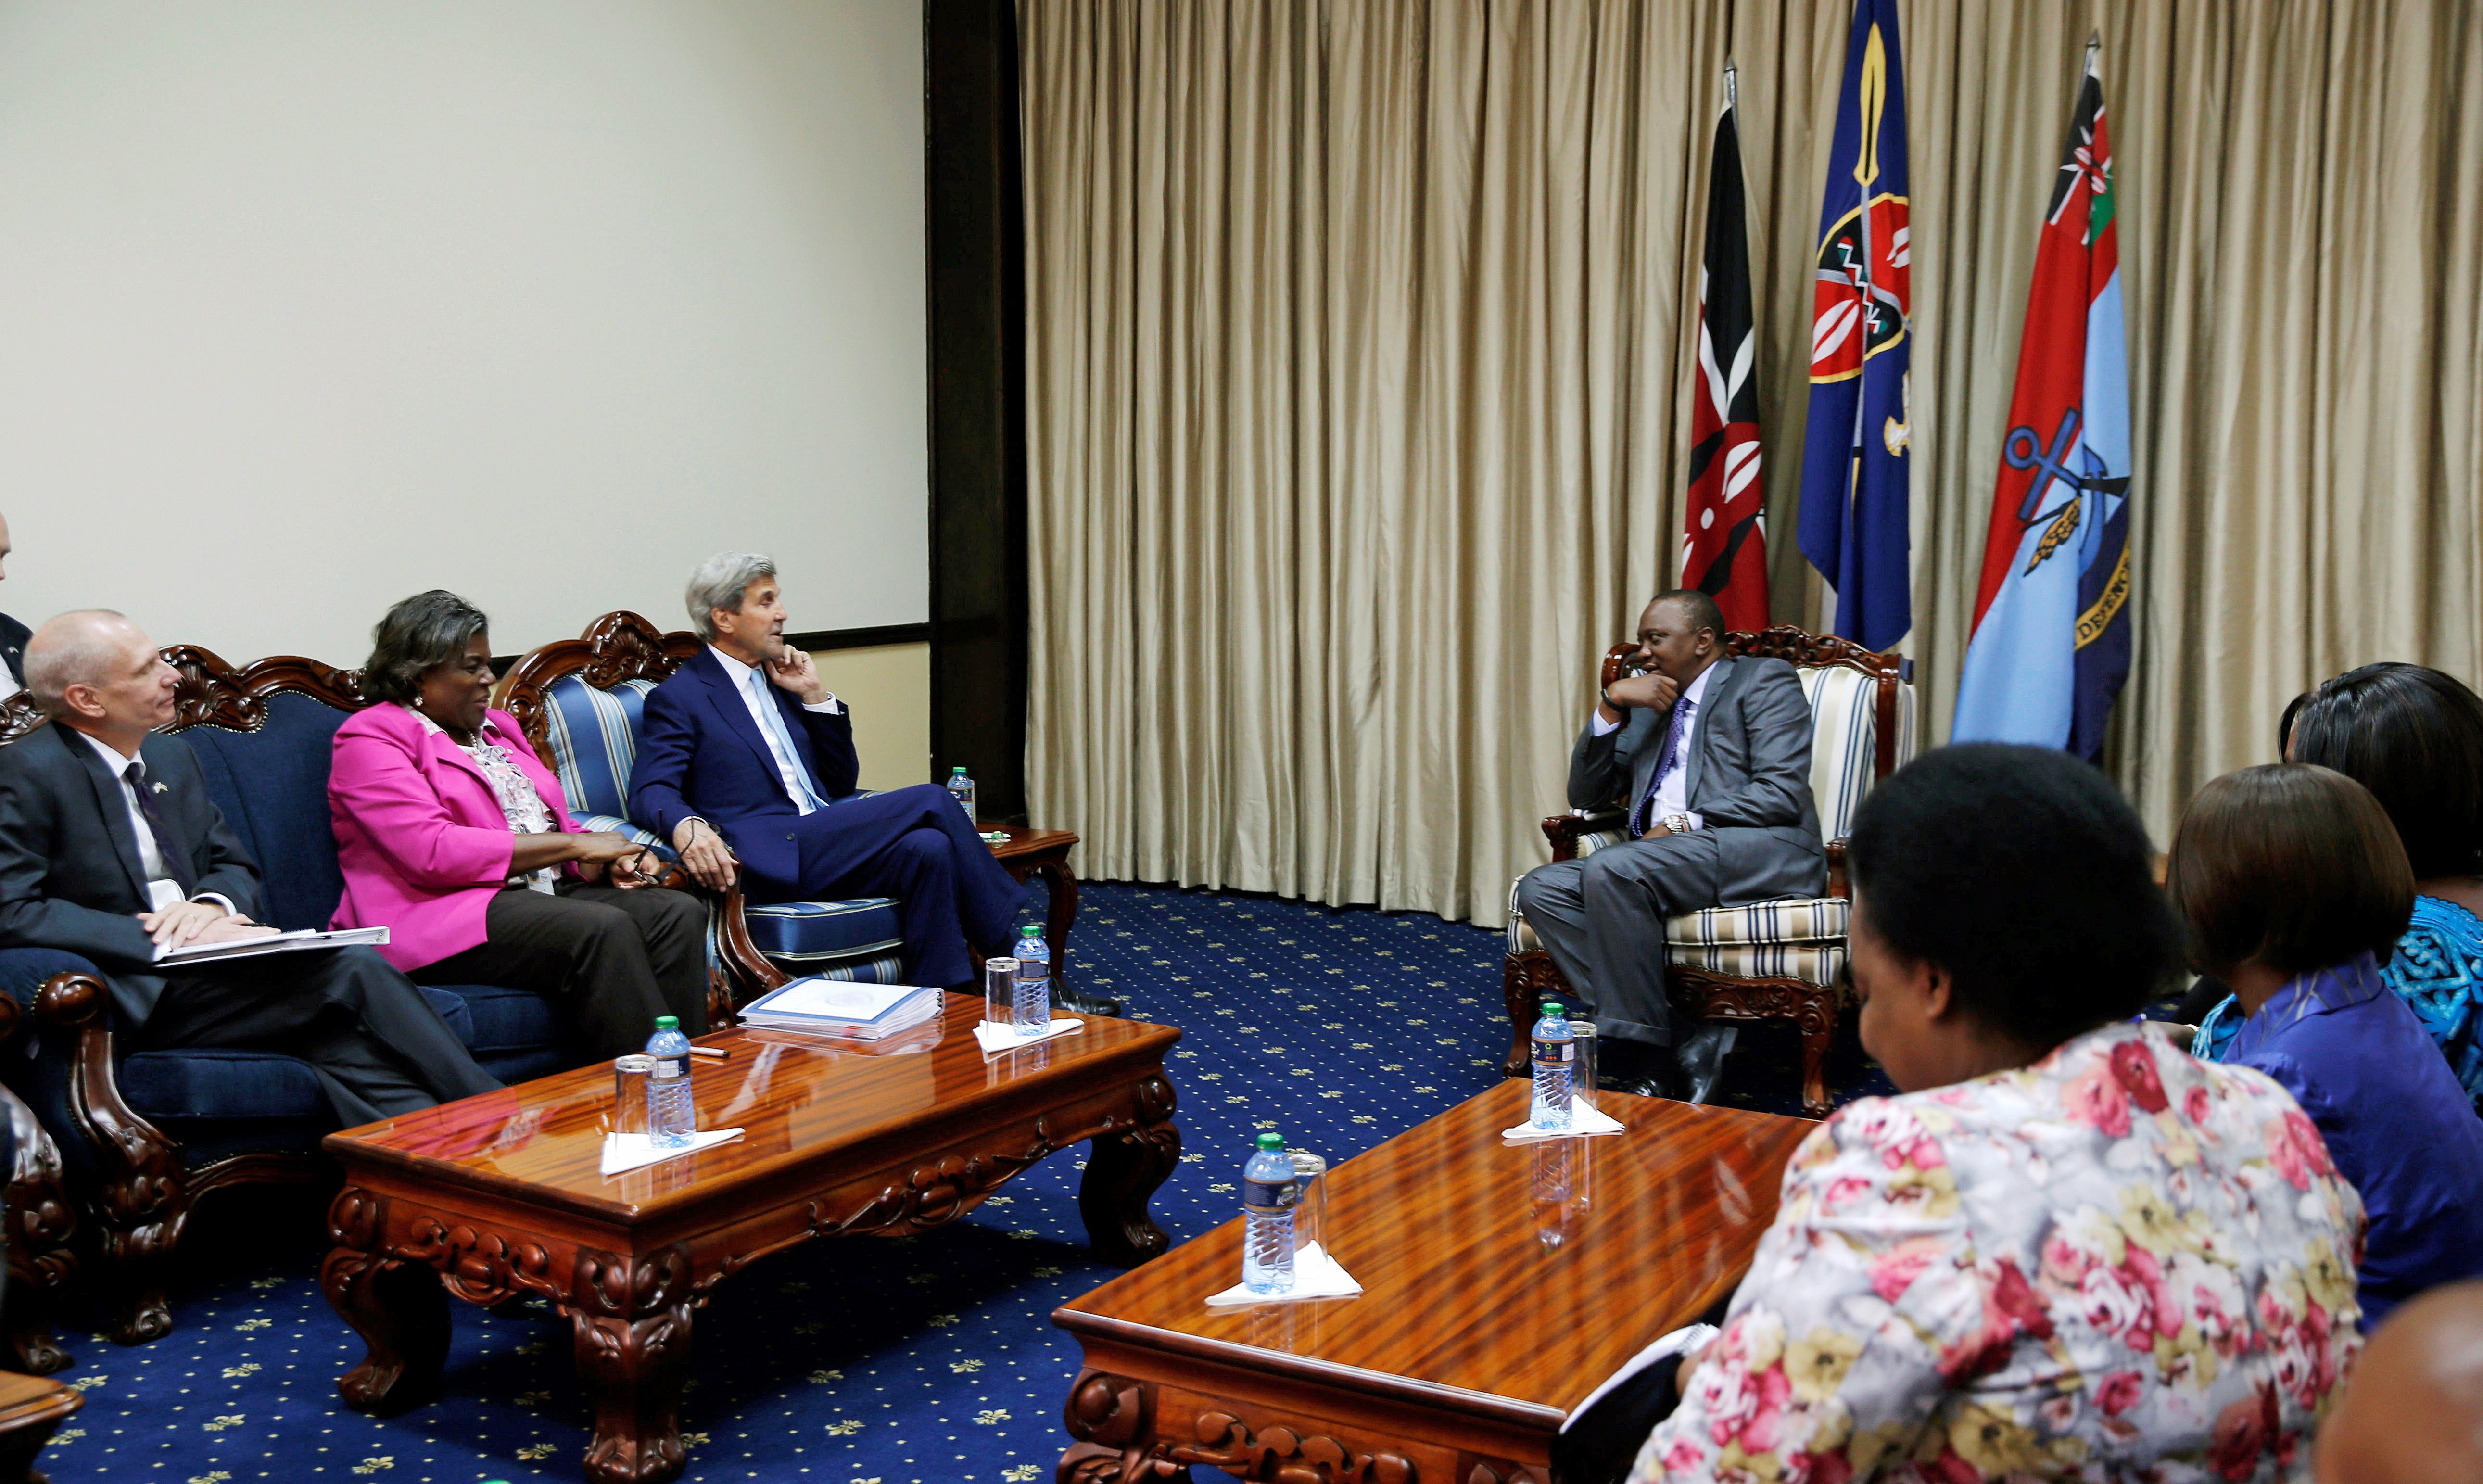 U.S. Secretary of State John Kerry (C) talks to Kenya's President Uhuru Kenyatta during their bilateral talks as other officials from Kenya and the U.S. listen., at the State House in Kenya's capital Nairobi, Aug. 22, 2016.